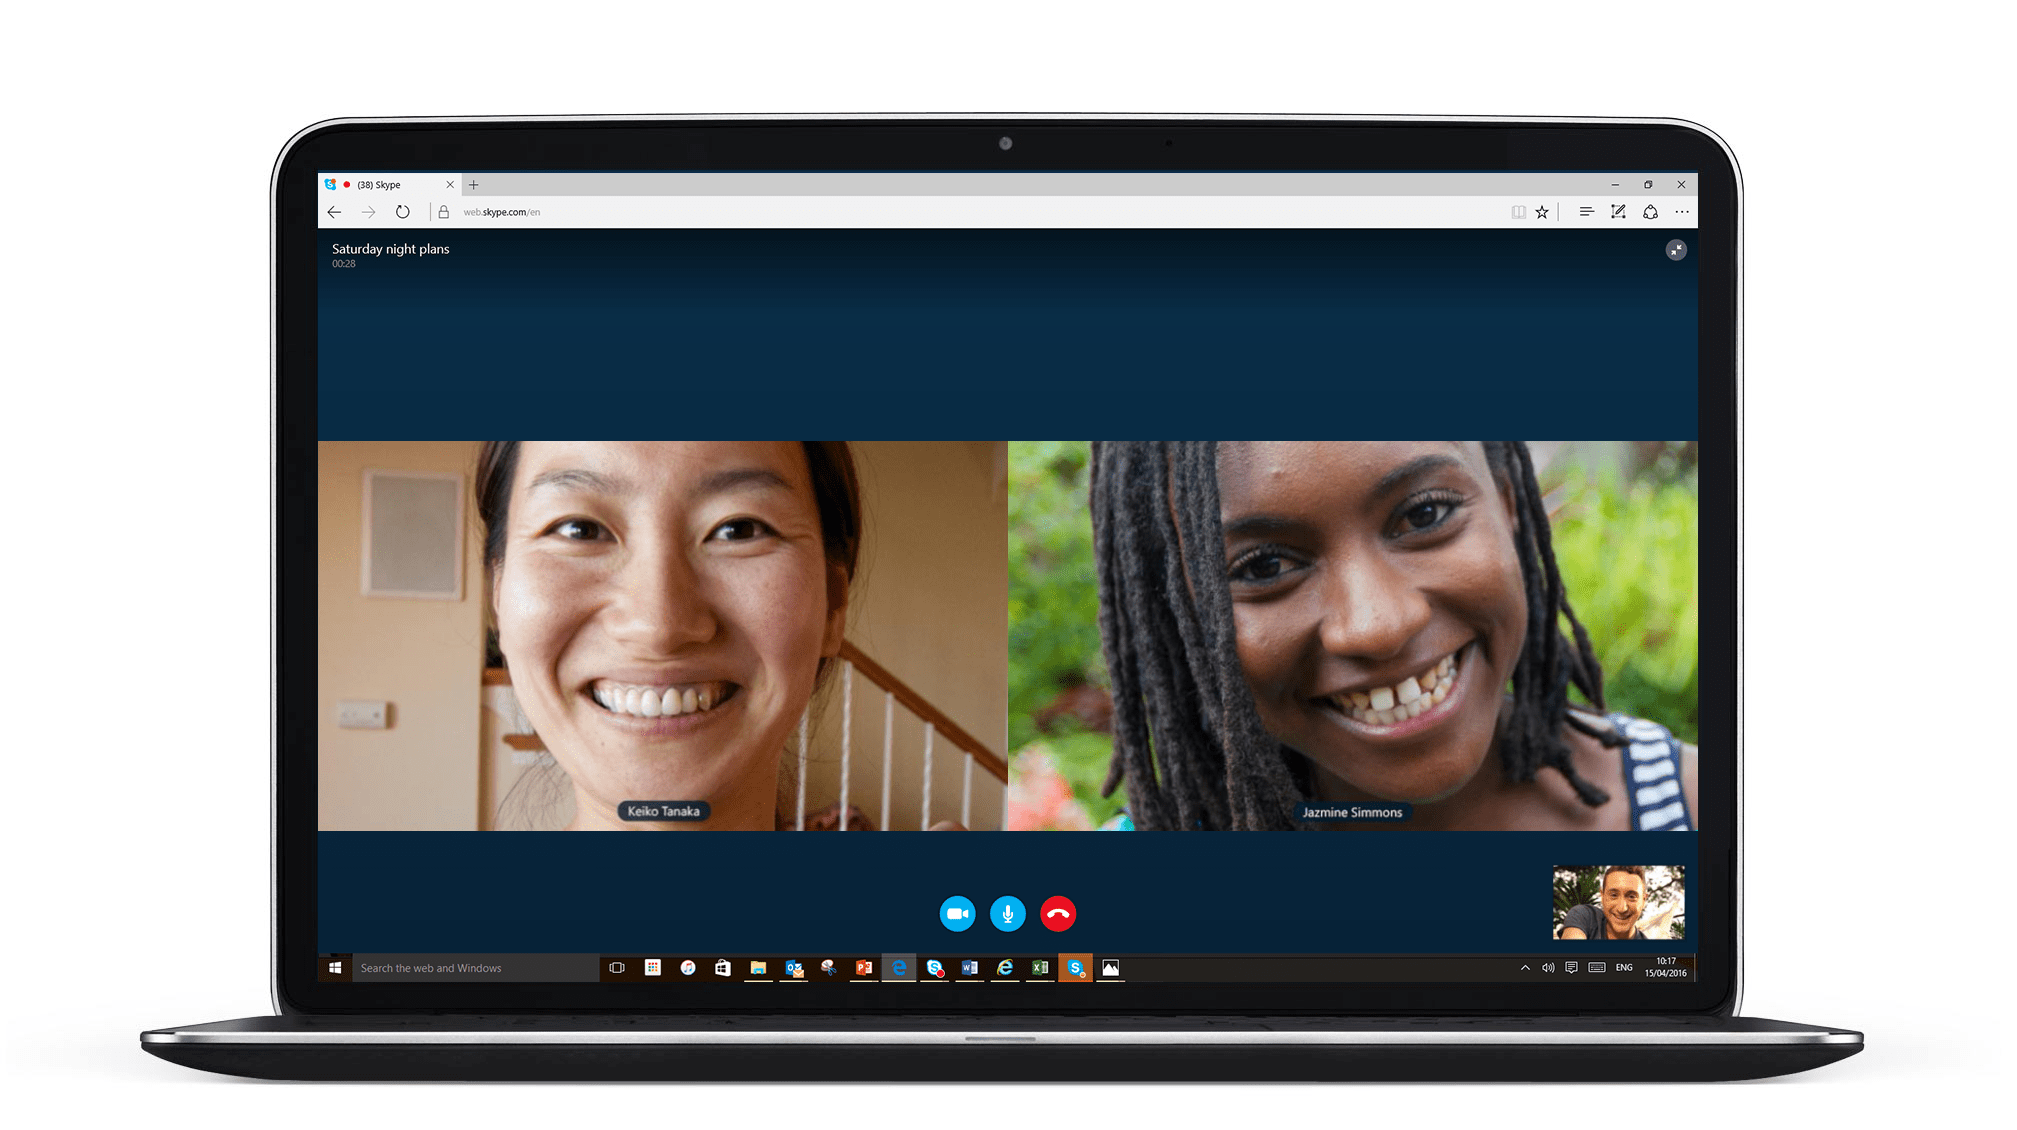 Now Enjoy the Preview of Plugin-Free Skype Video calling on